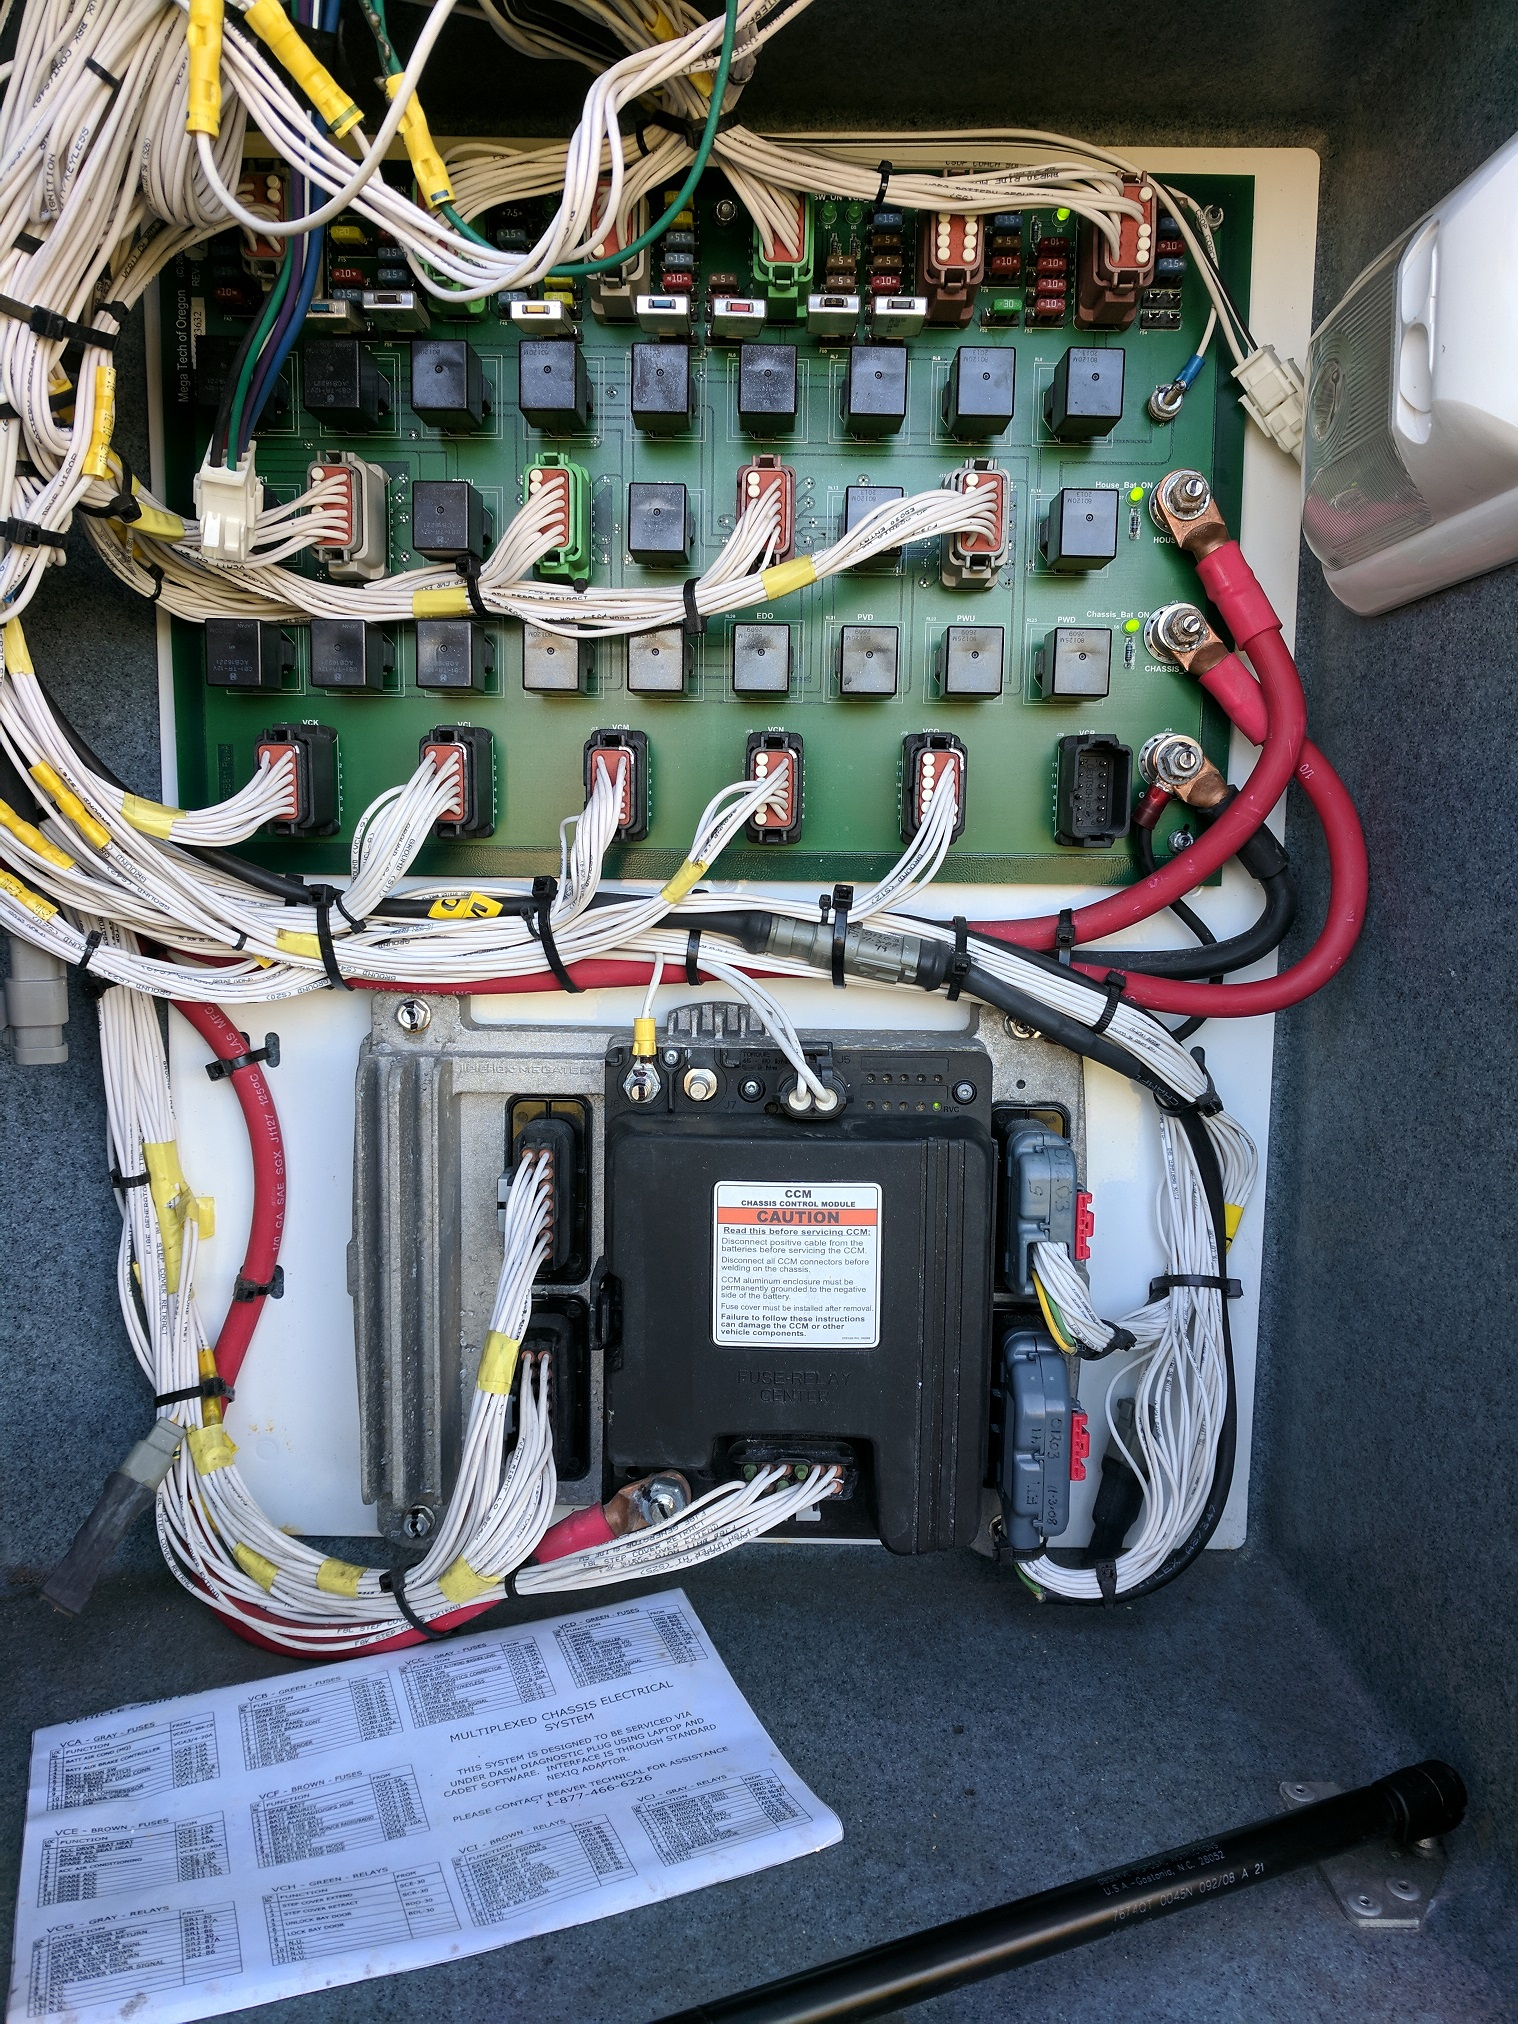 VIP    smart        Wheel       Wiring     Electrical  FMCA RV Forums     A